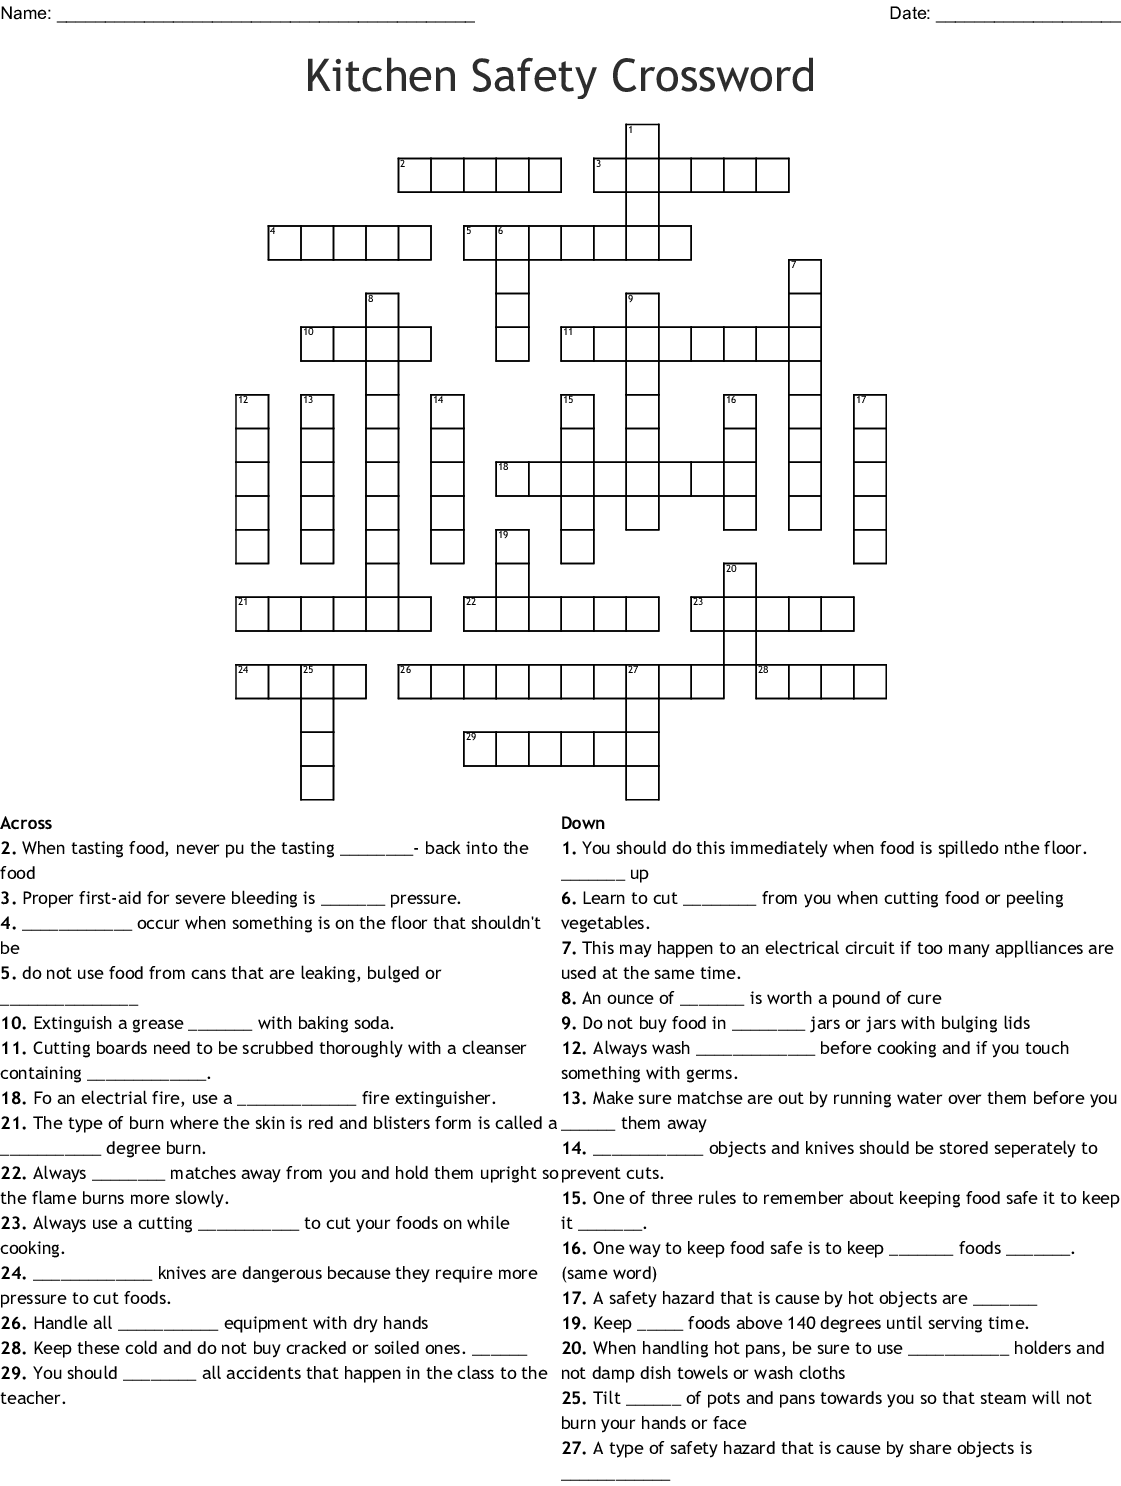 Workplace Safety Crossword